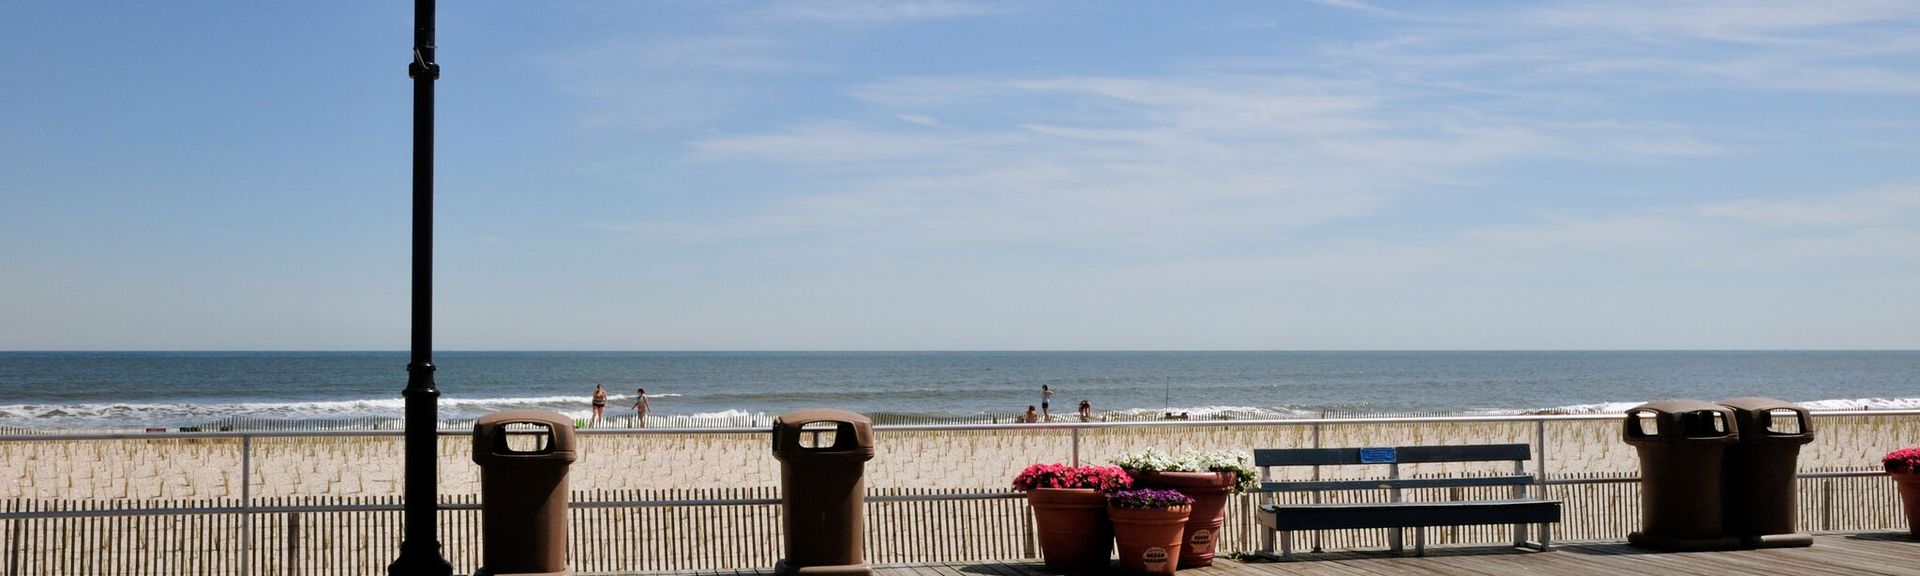 Ocean City, NJ, USA